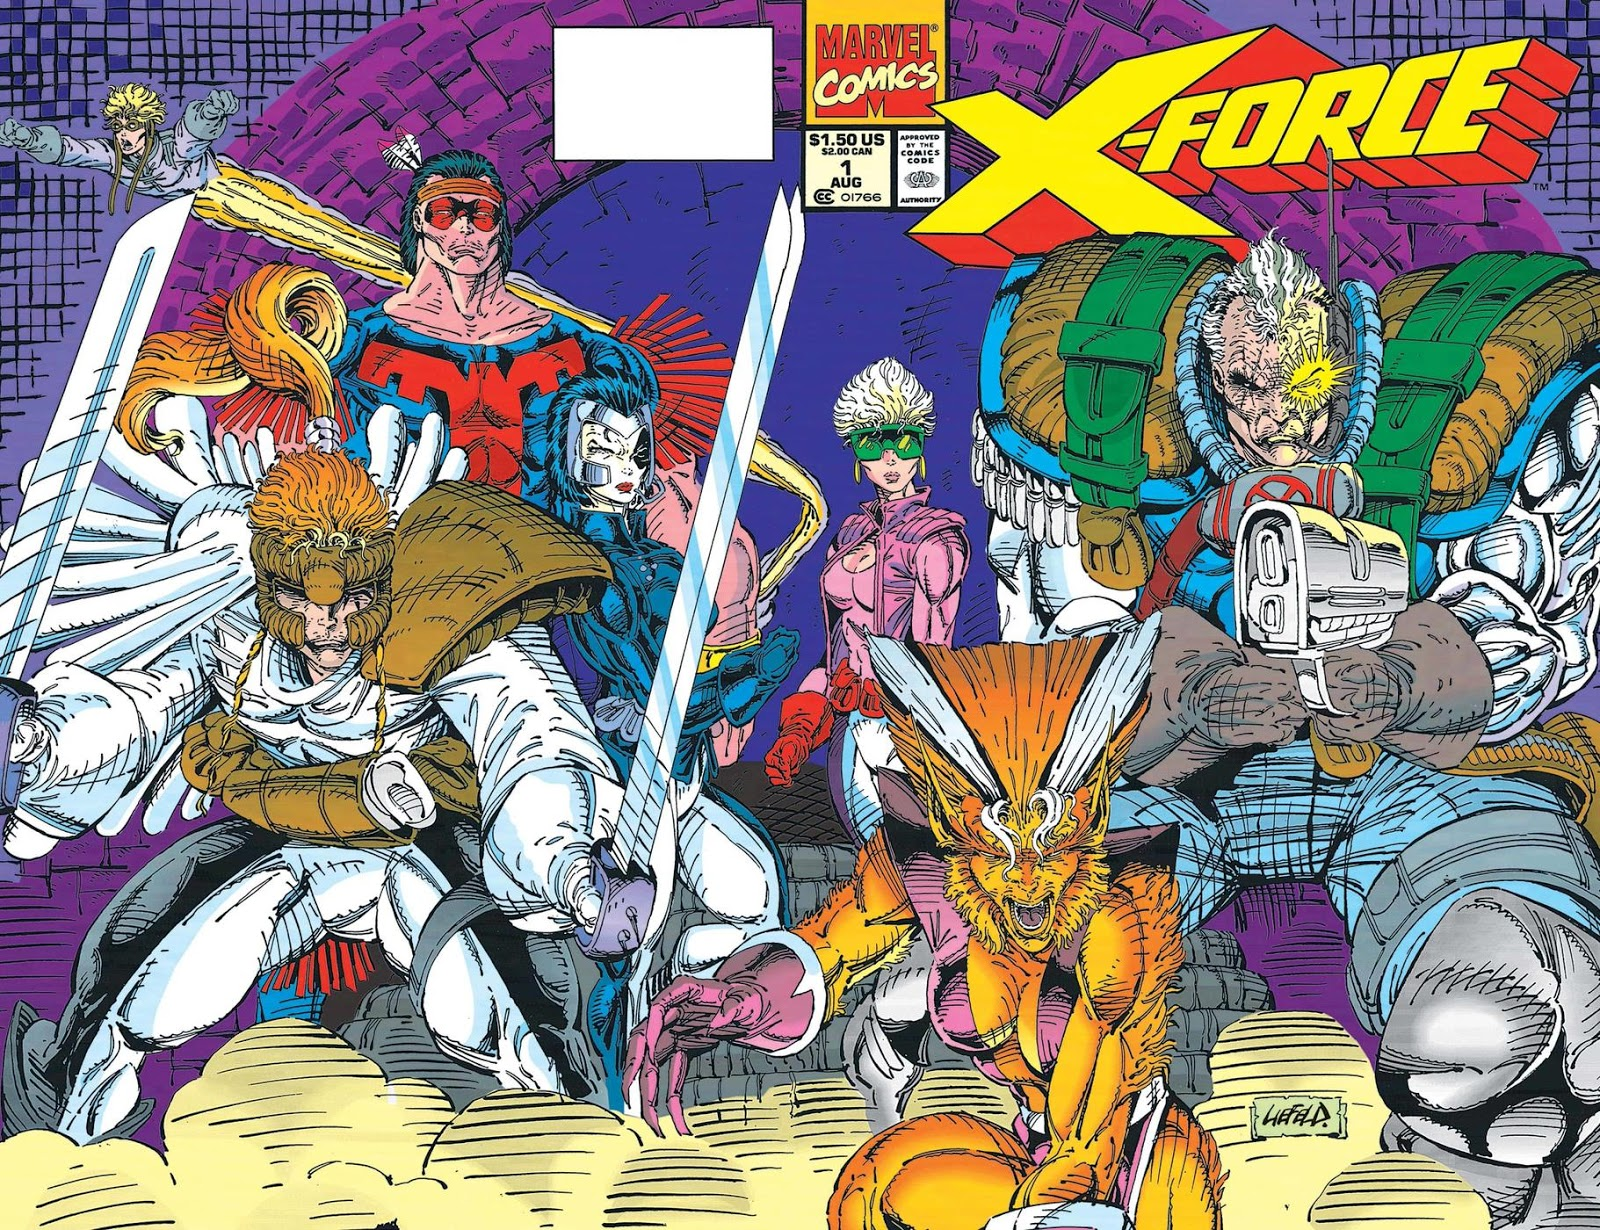 Rob Liefeld X-Force # 1 USA, 1991 X-Force team card